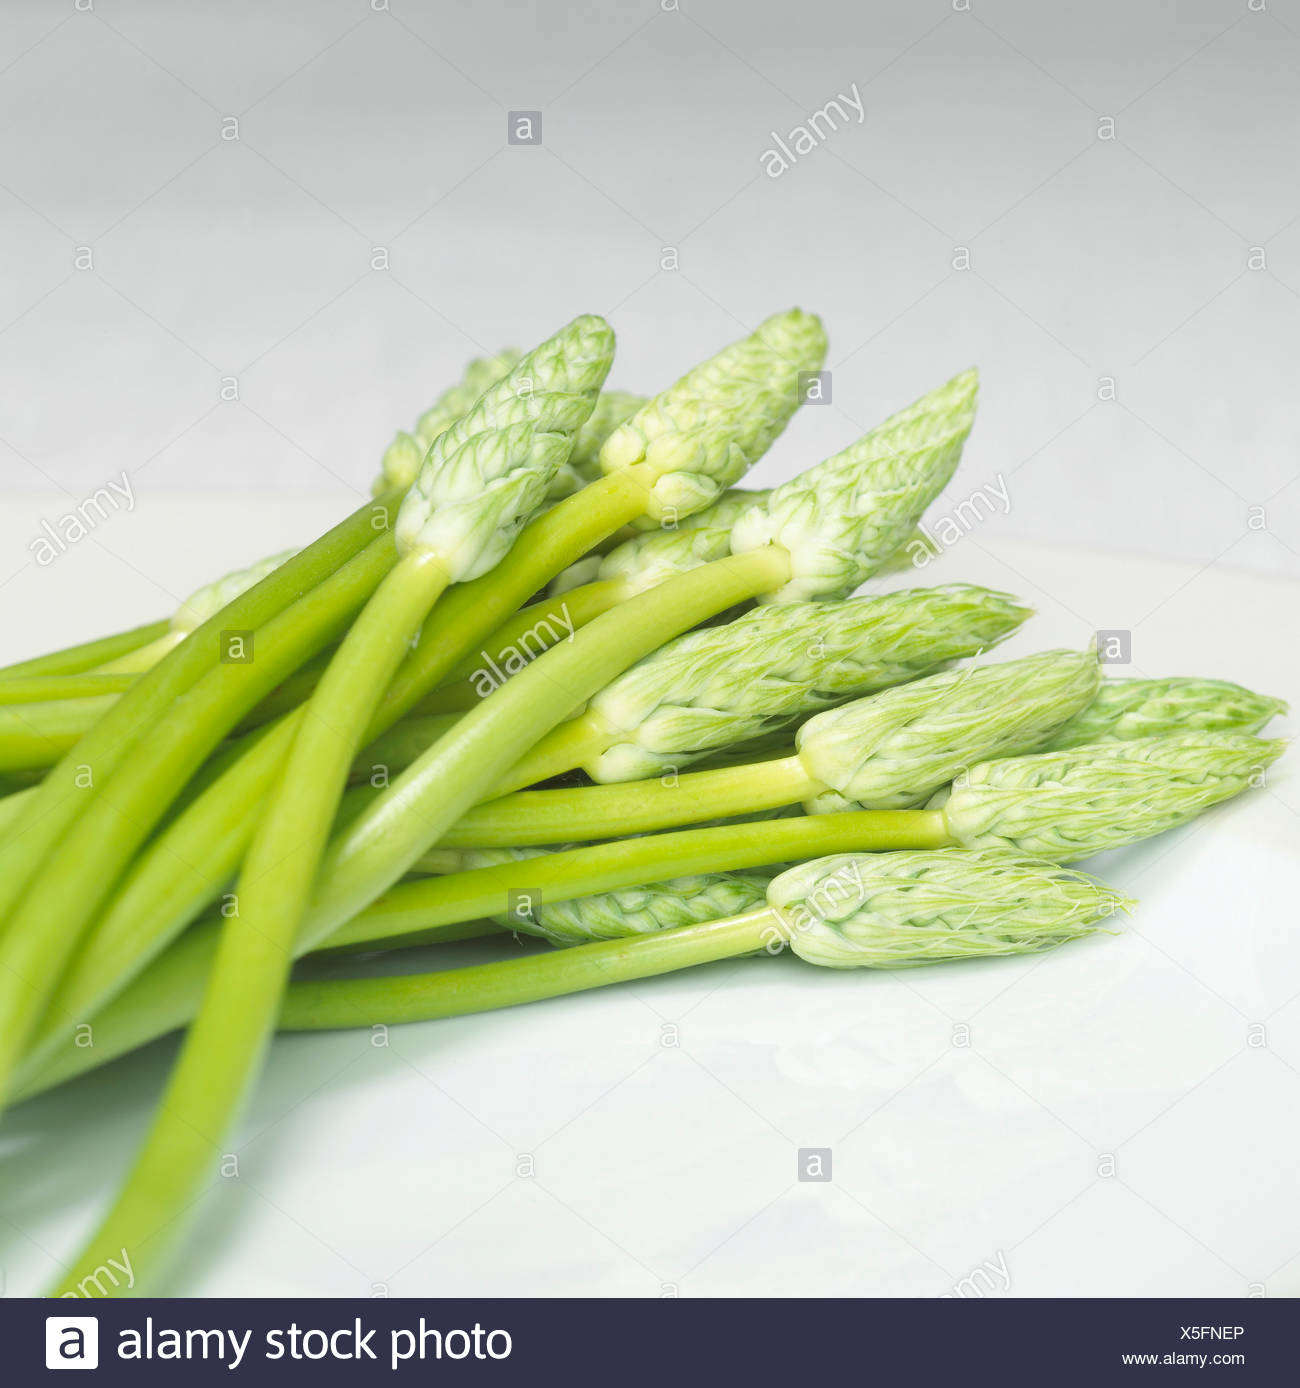 Wilder Spargel, close-up Stockbild